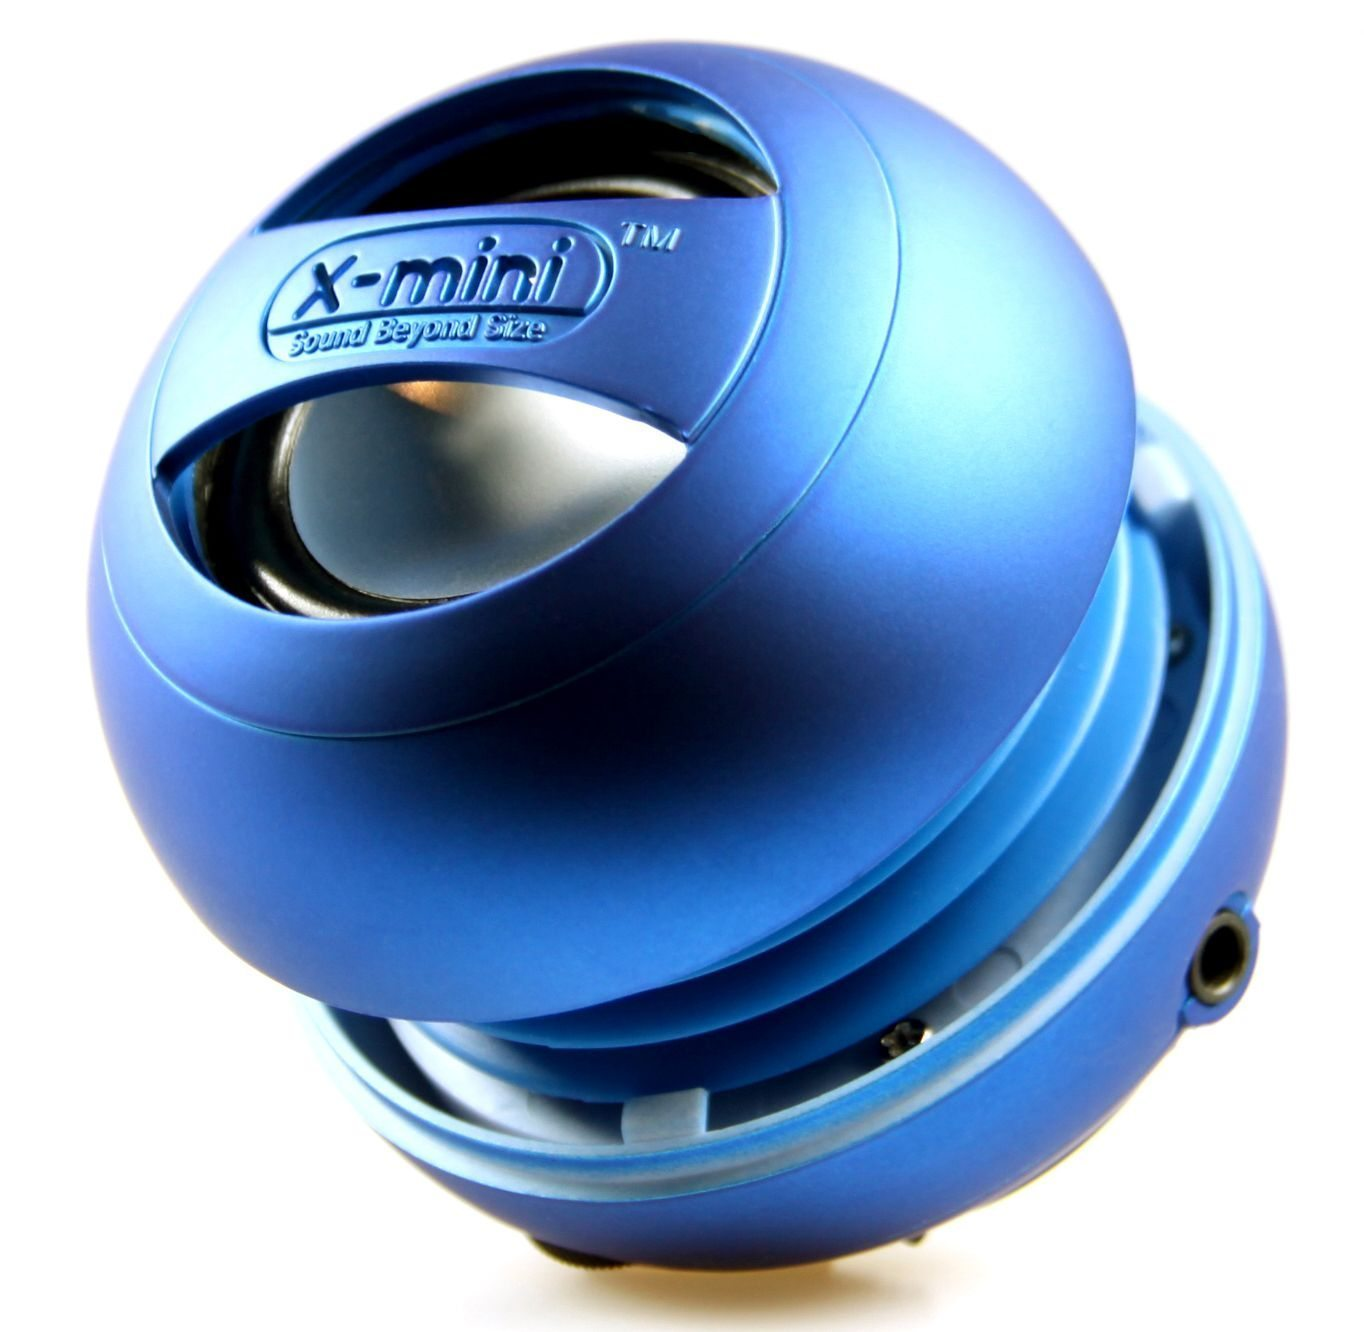 X-mini II Portable Capsule Speaker - Blue